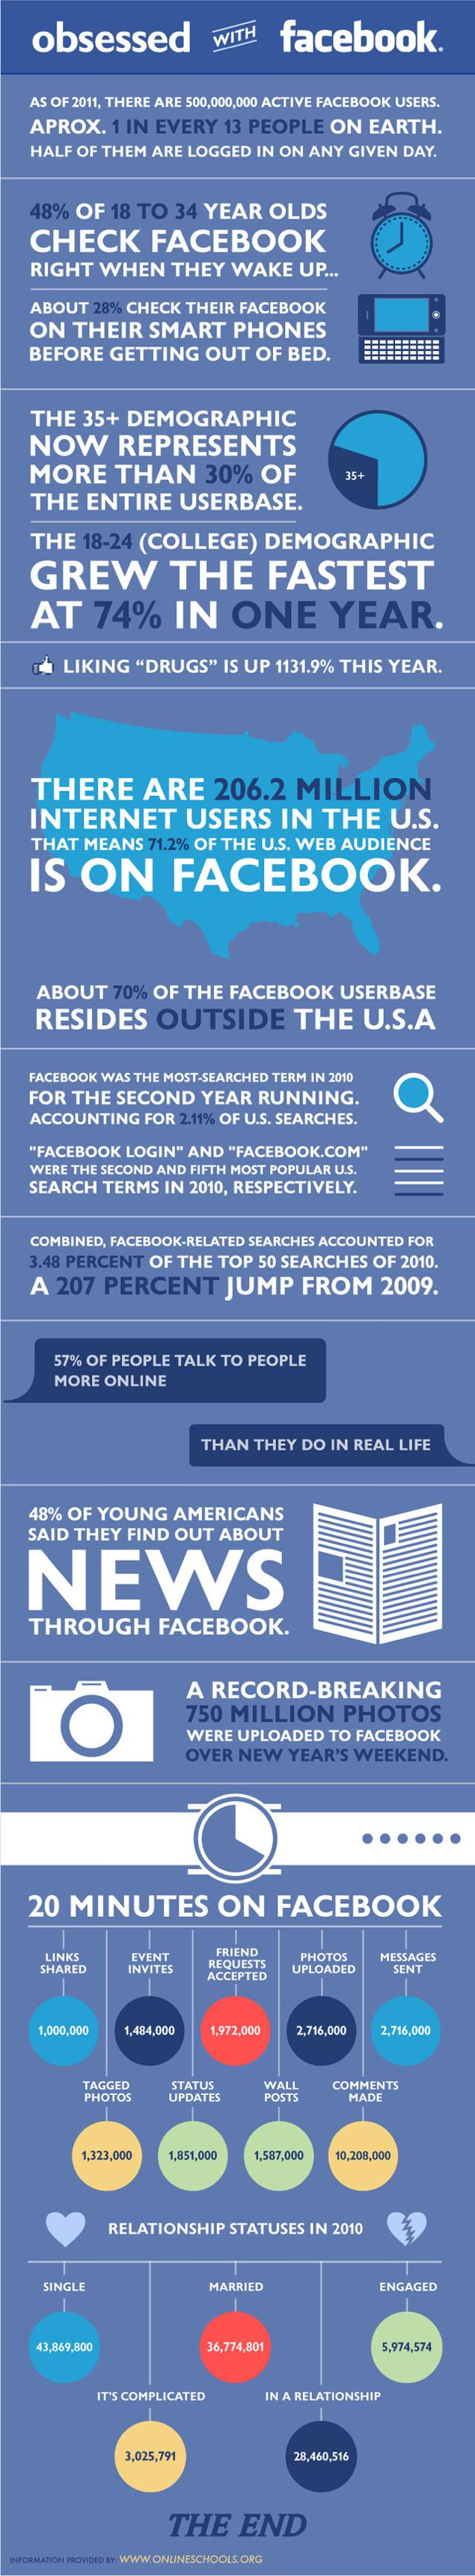 Are We That Obsessed with Facebook? [Infographic]